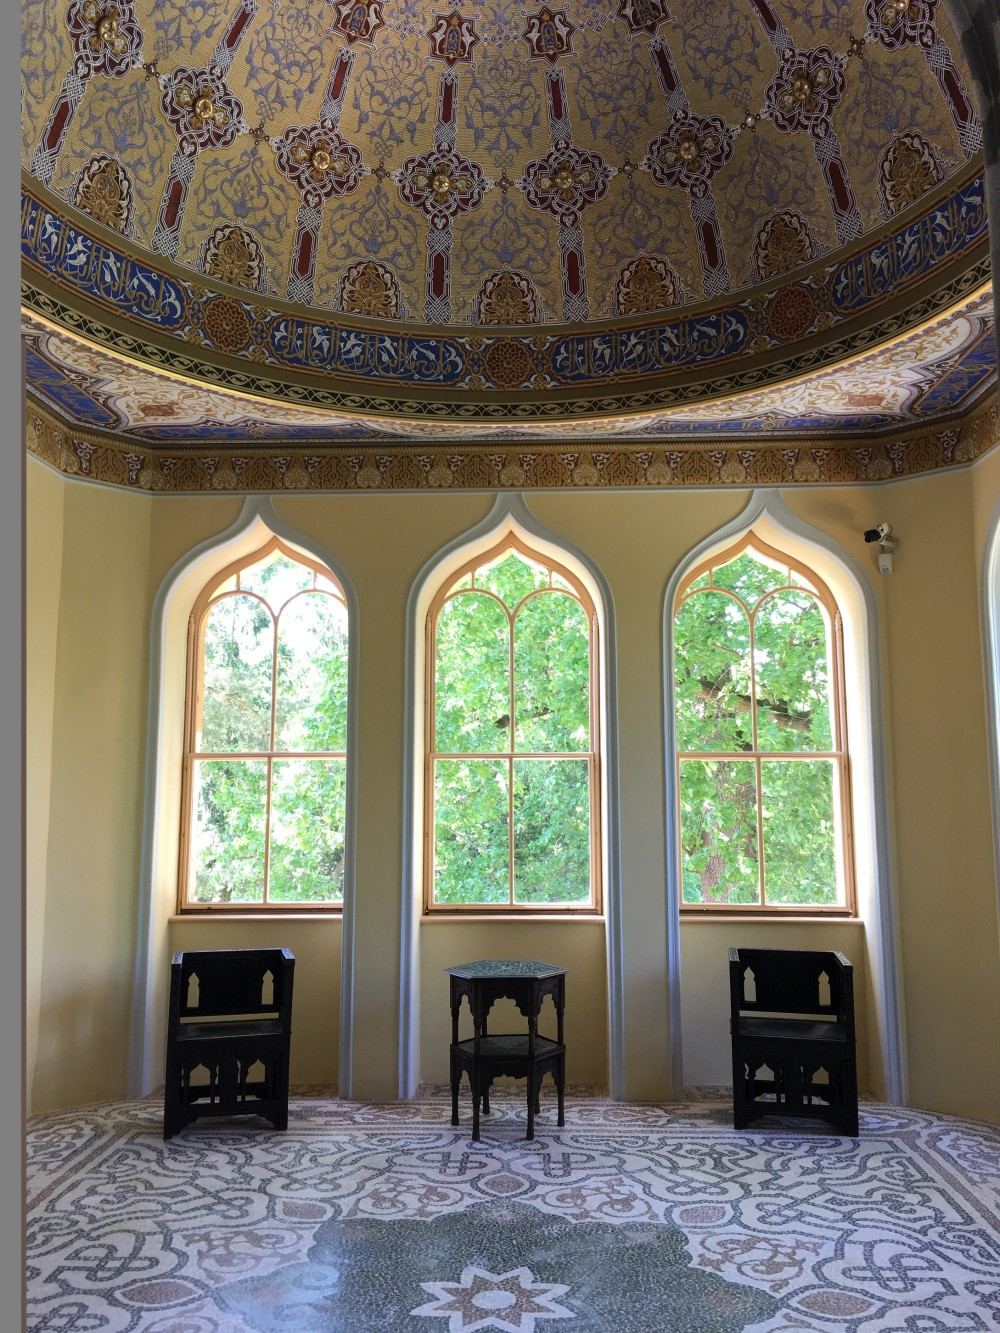 The lower part of the minaret has eight rooms, with richly decorated ceilings, walls and floors, and oriental ornaments. – © Archive of Lednice Castle